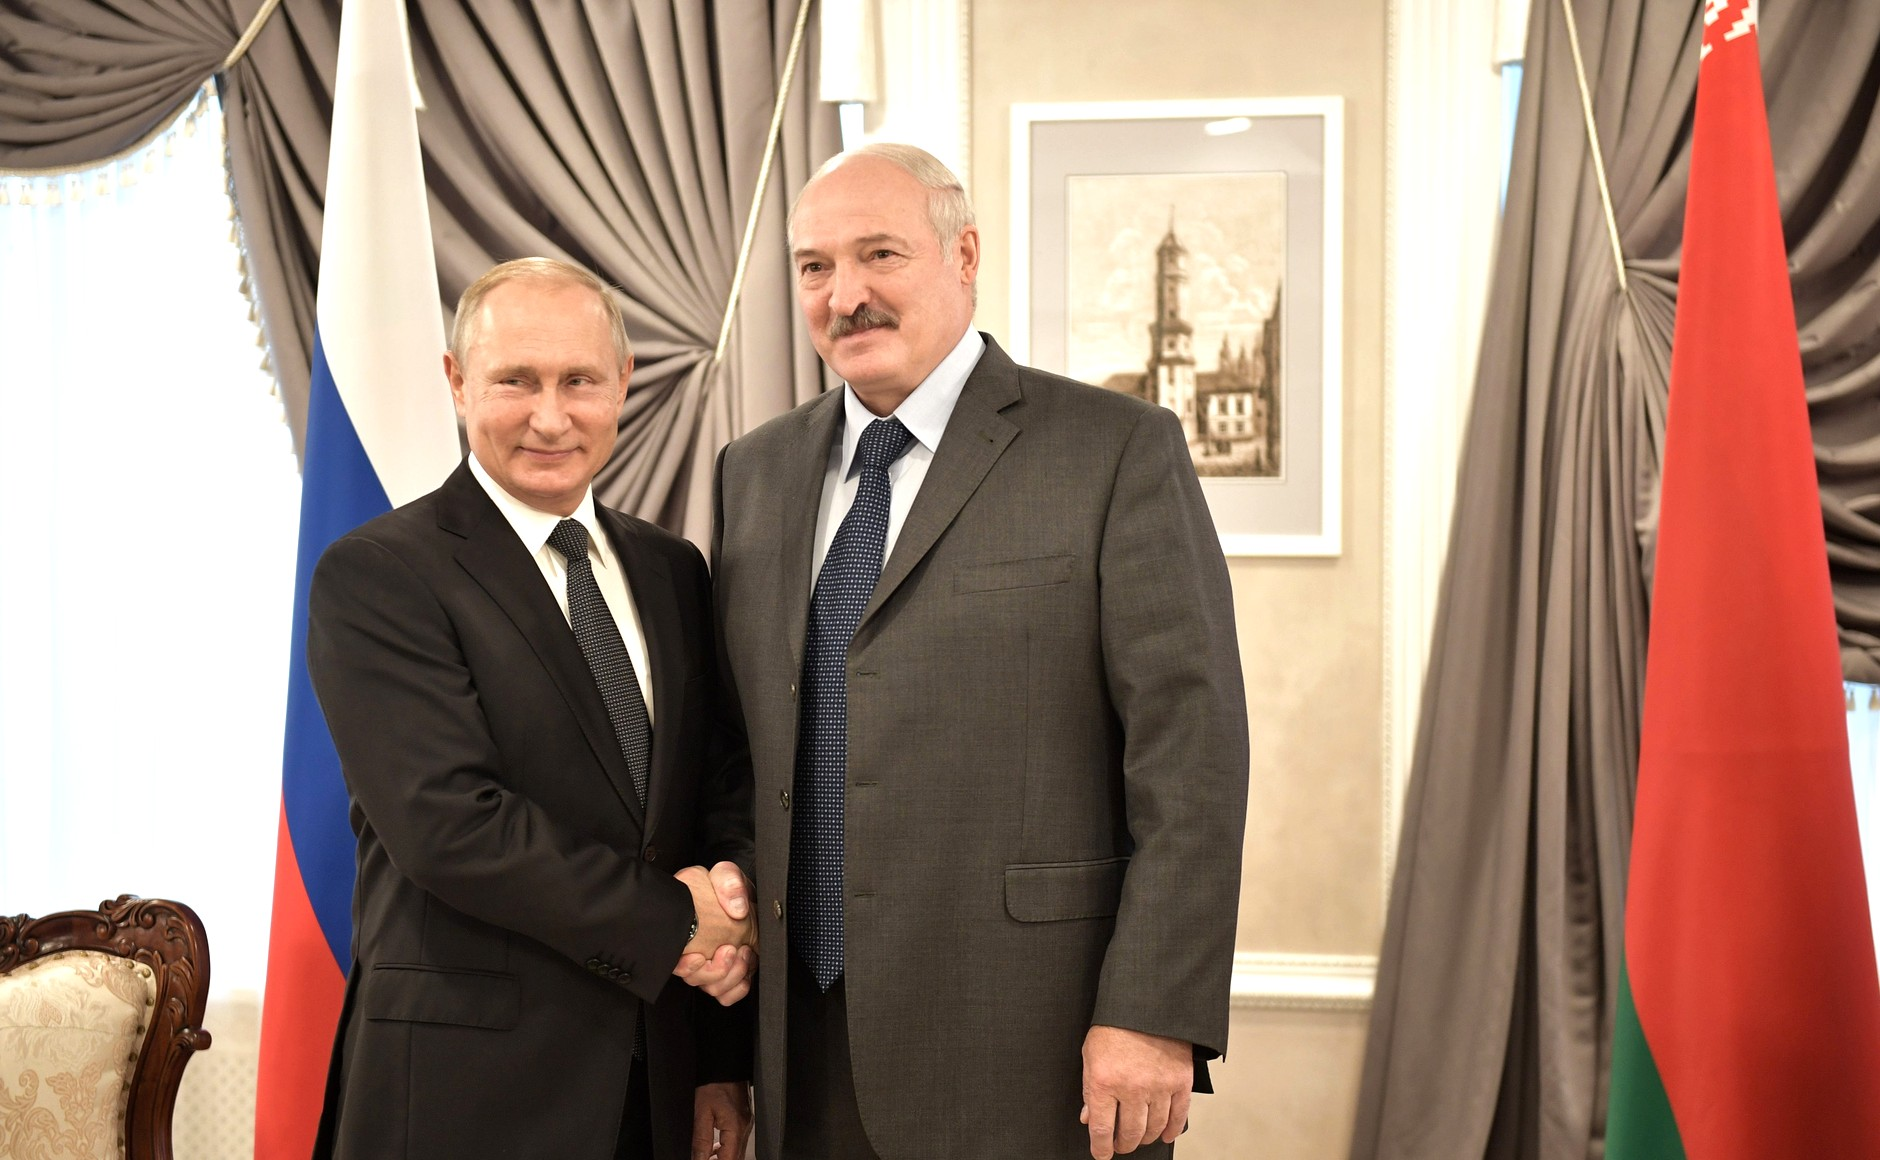 Russian President Vladimir Putin, left, and Belarusian President Alexander Lukashenko, right, pictured at the Kremlin after a meeting in October 2018. (The Kremlin)